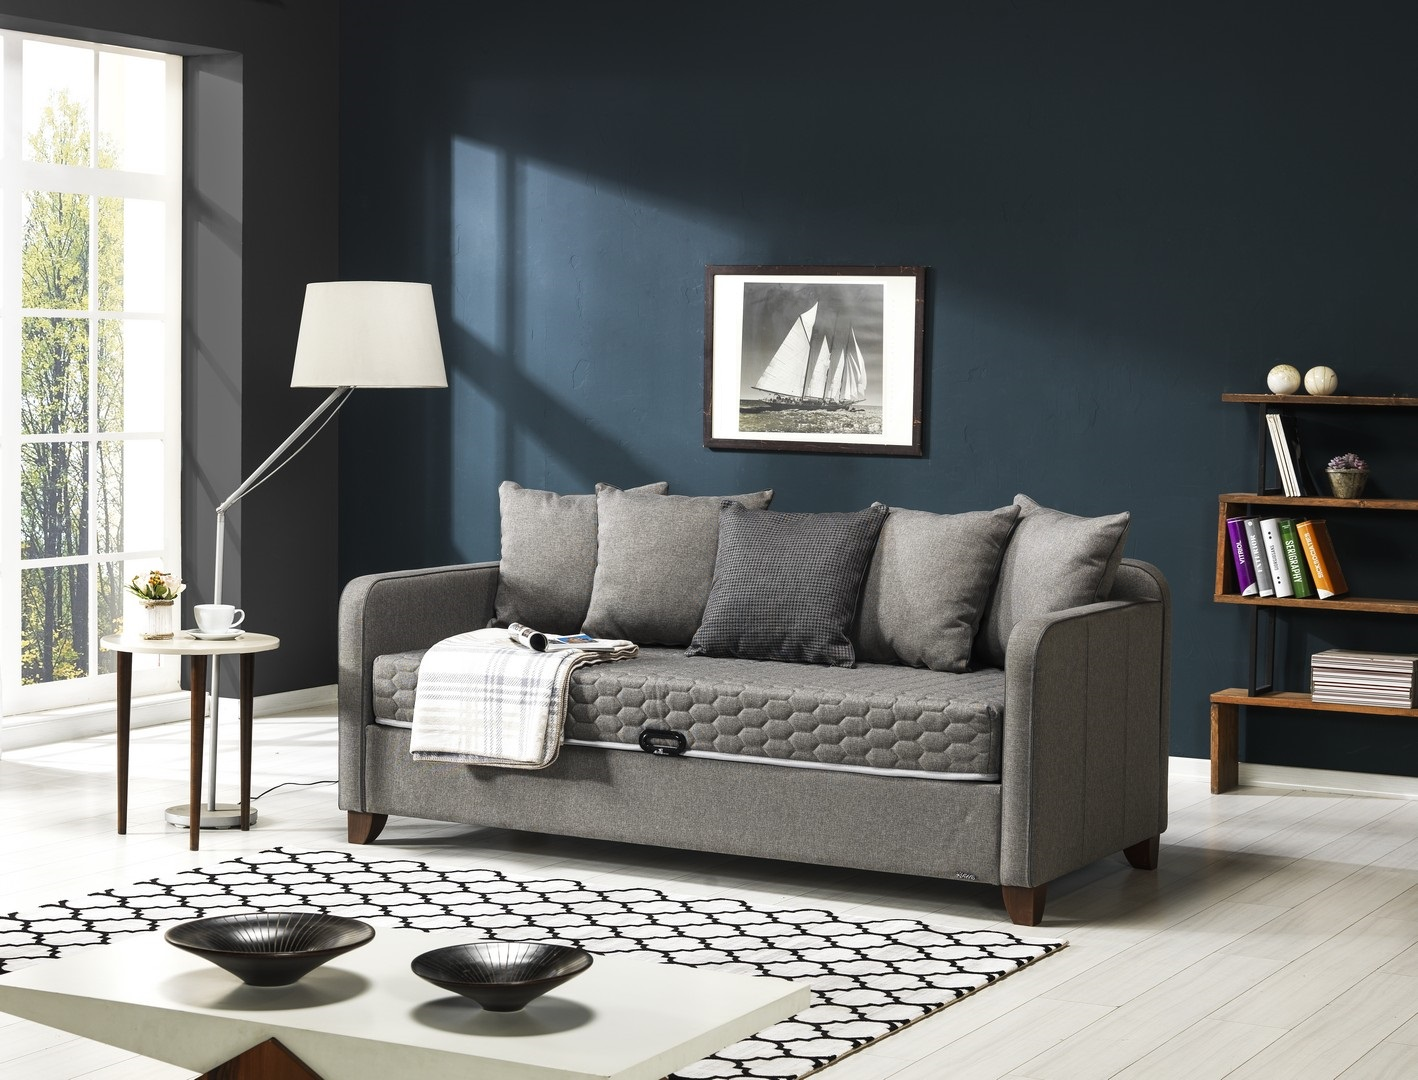 DAYBED 090x190 ANTRASIT(T0070)